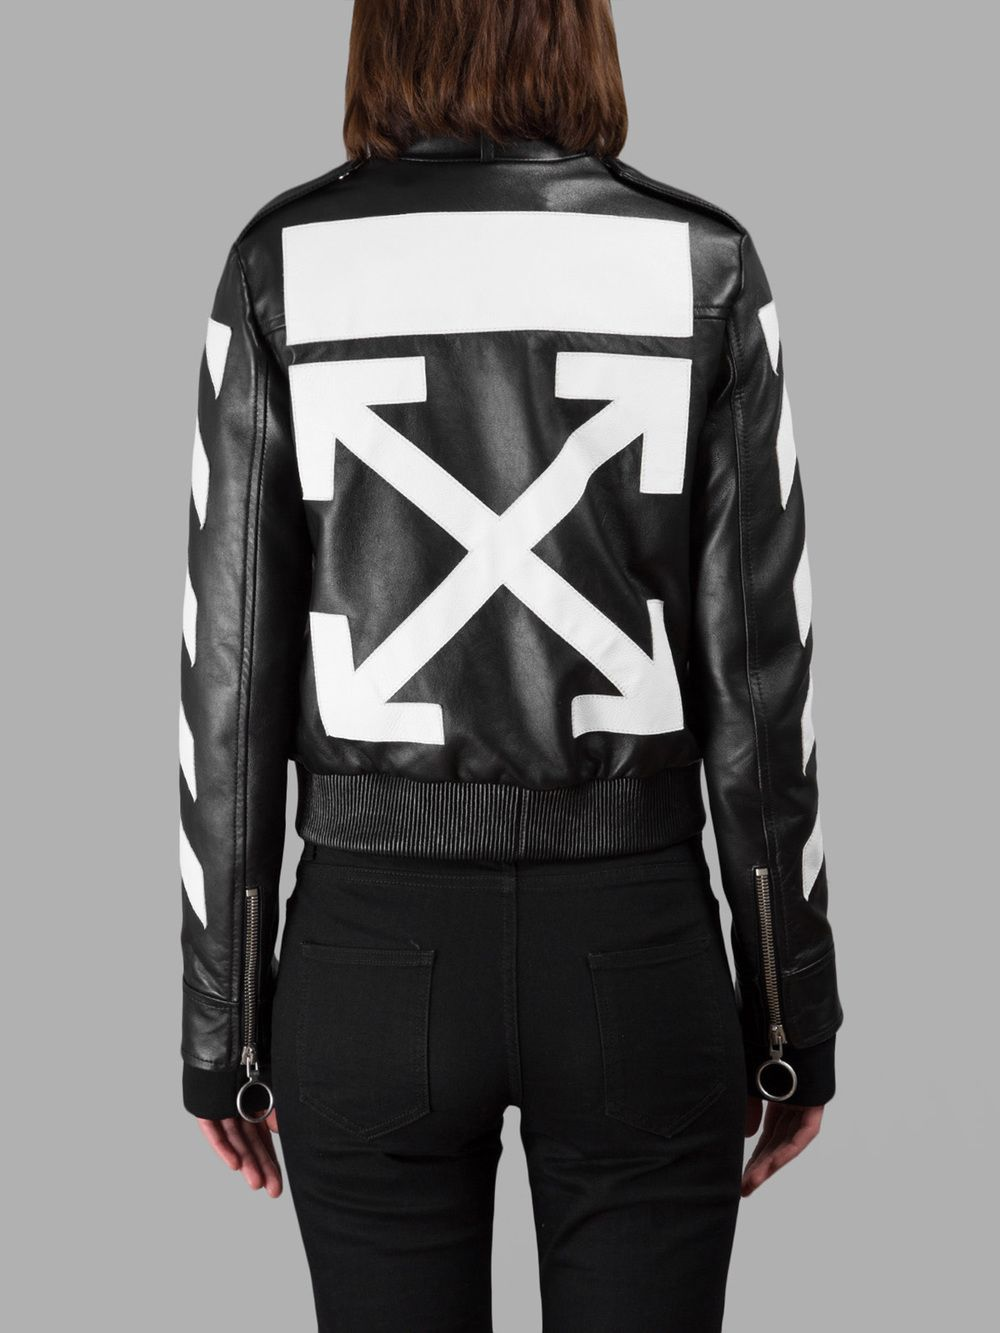 OFF WHITE CO VIRGIL ABLOH WOMEN'S BLACK LEATHER JACKET2 in